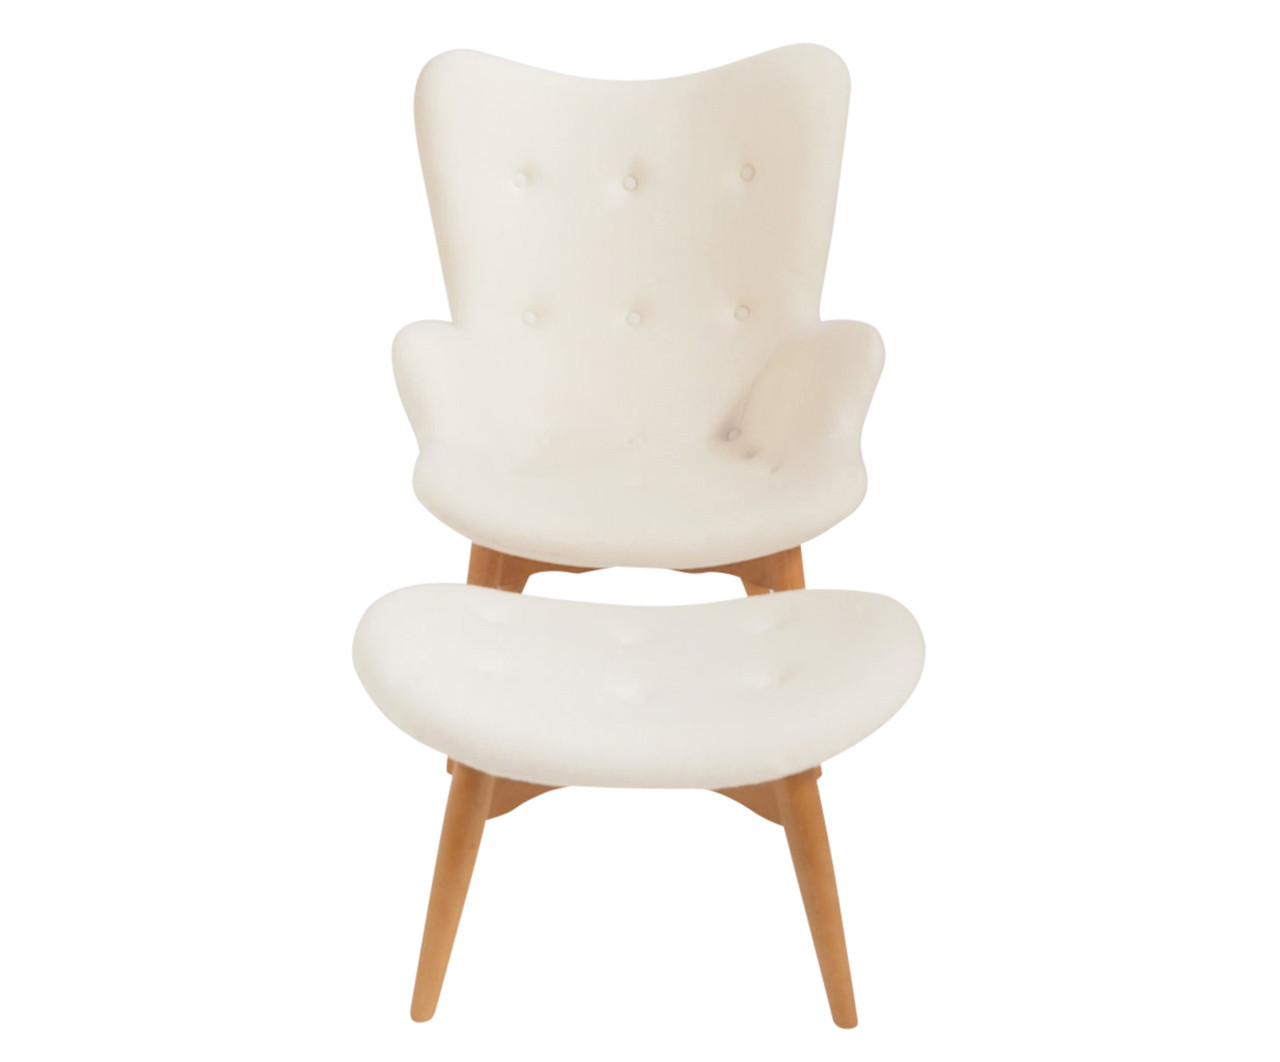 Magnificent Replica Grant Featherston Contour Chair Footstool White Soft Cashmere Machost Co Dining Chair Design Ideas Machostcouk